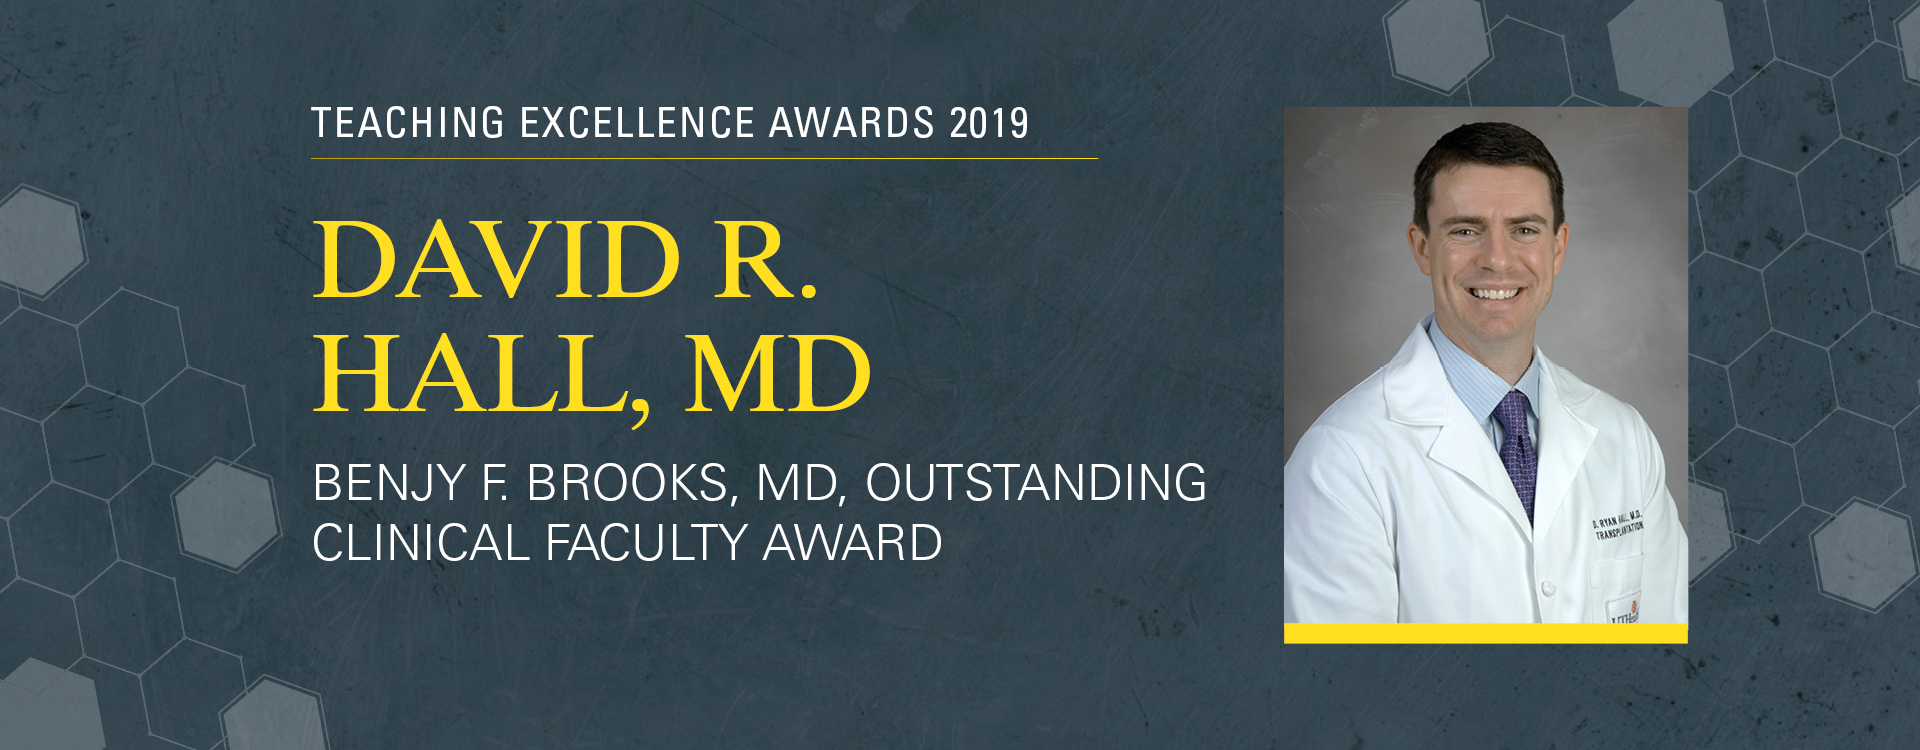 David R. Hall, MD, Teaching Excellence Award